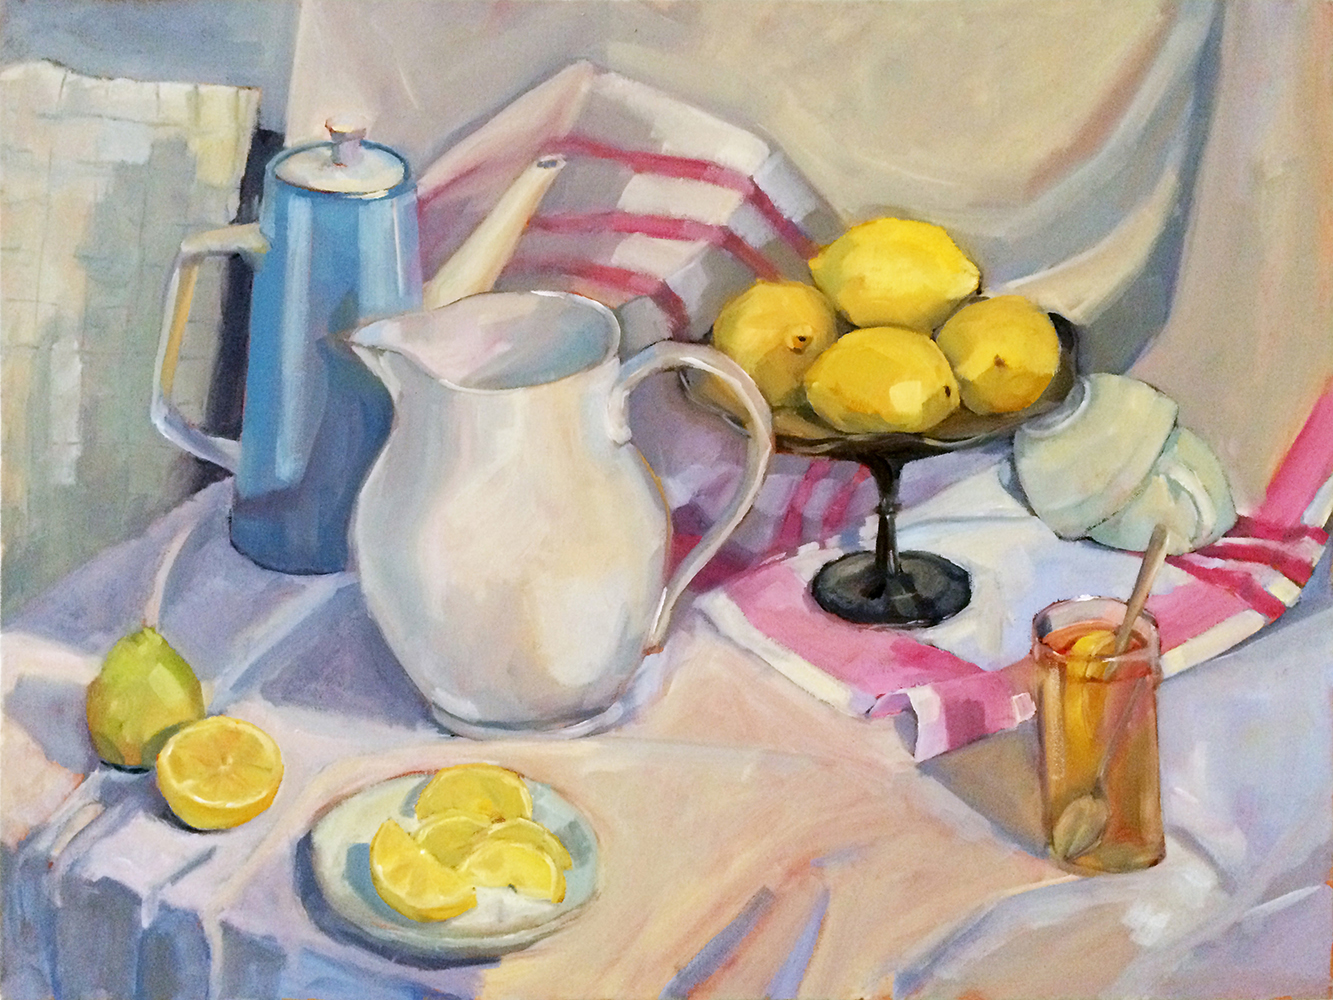 Lemon Portrait, 2014, oil on canvas, 30 x 40 inches, private collection